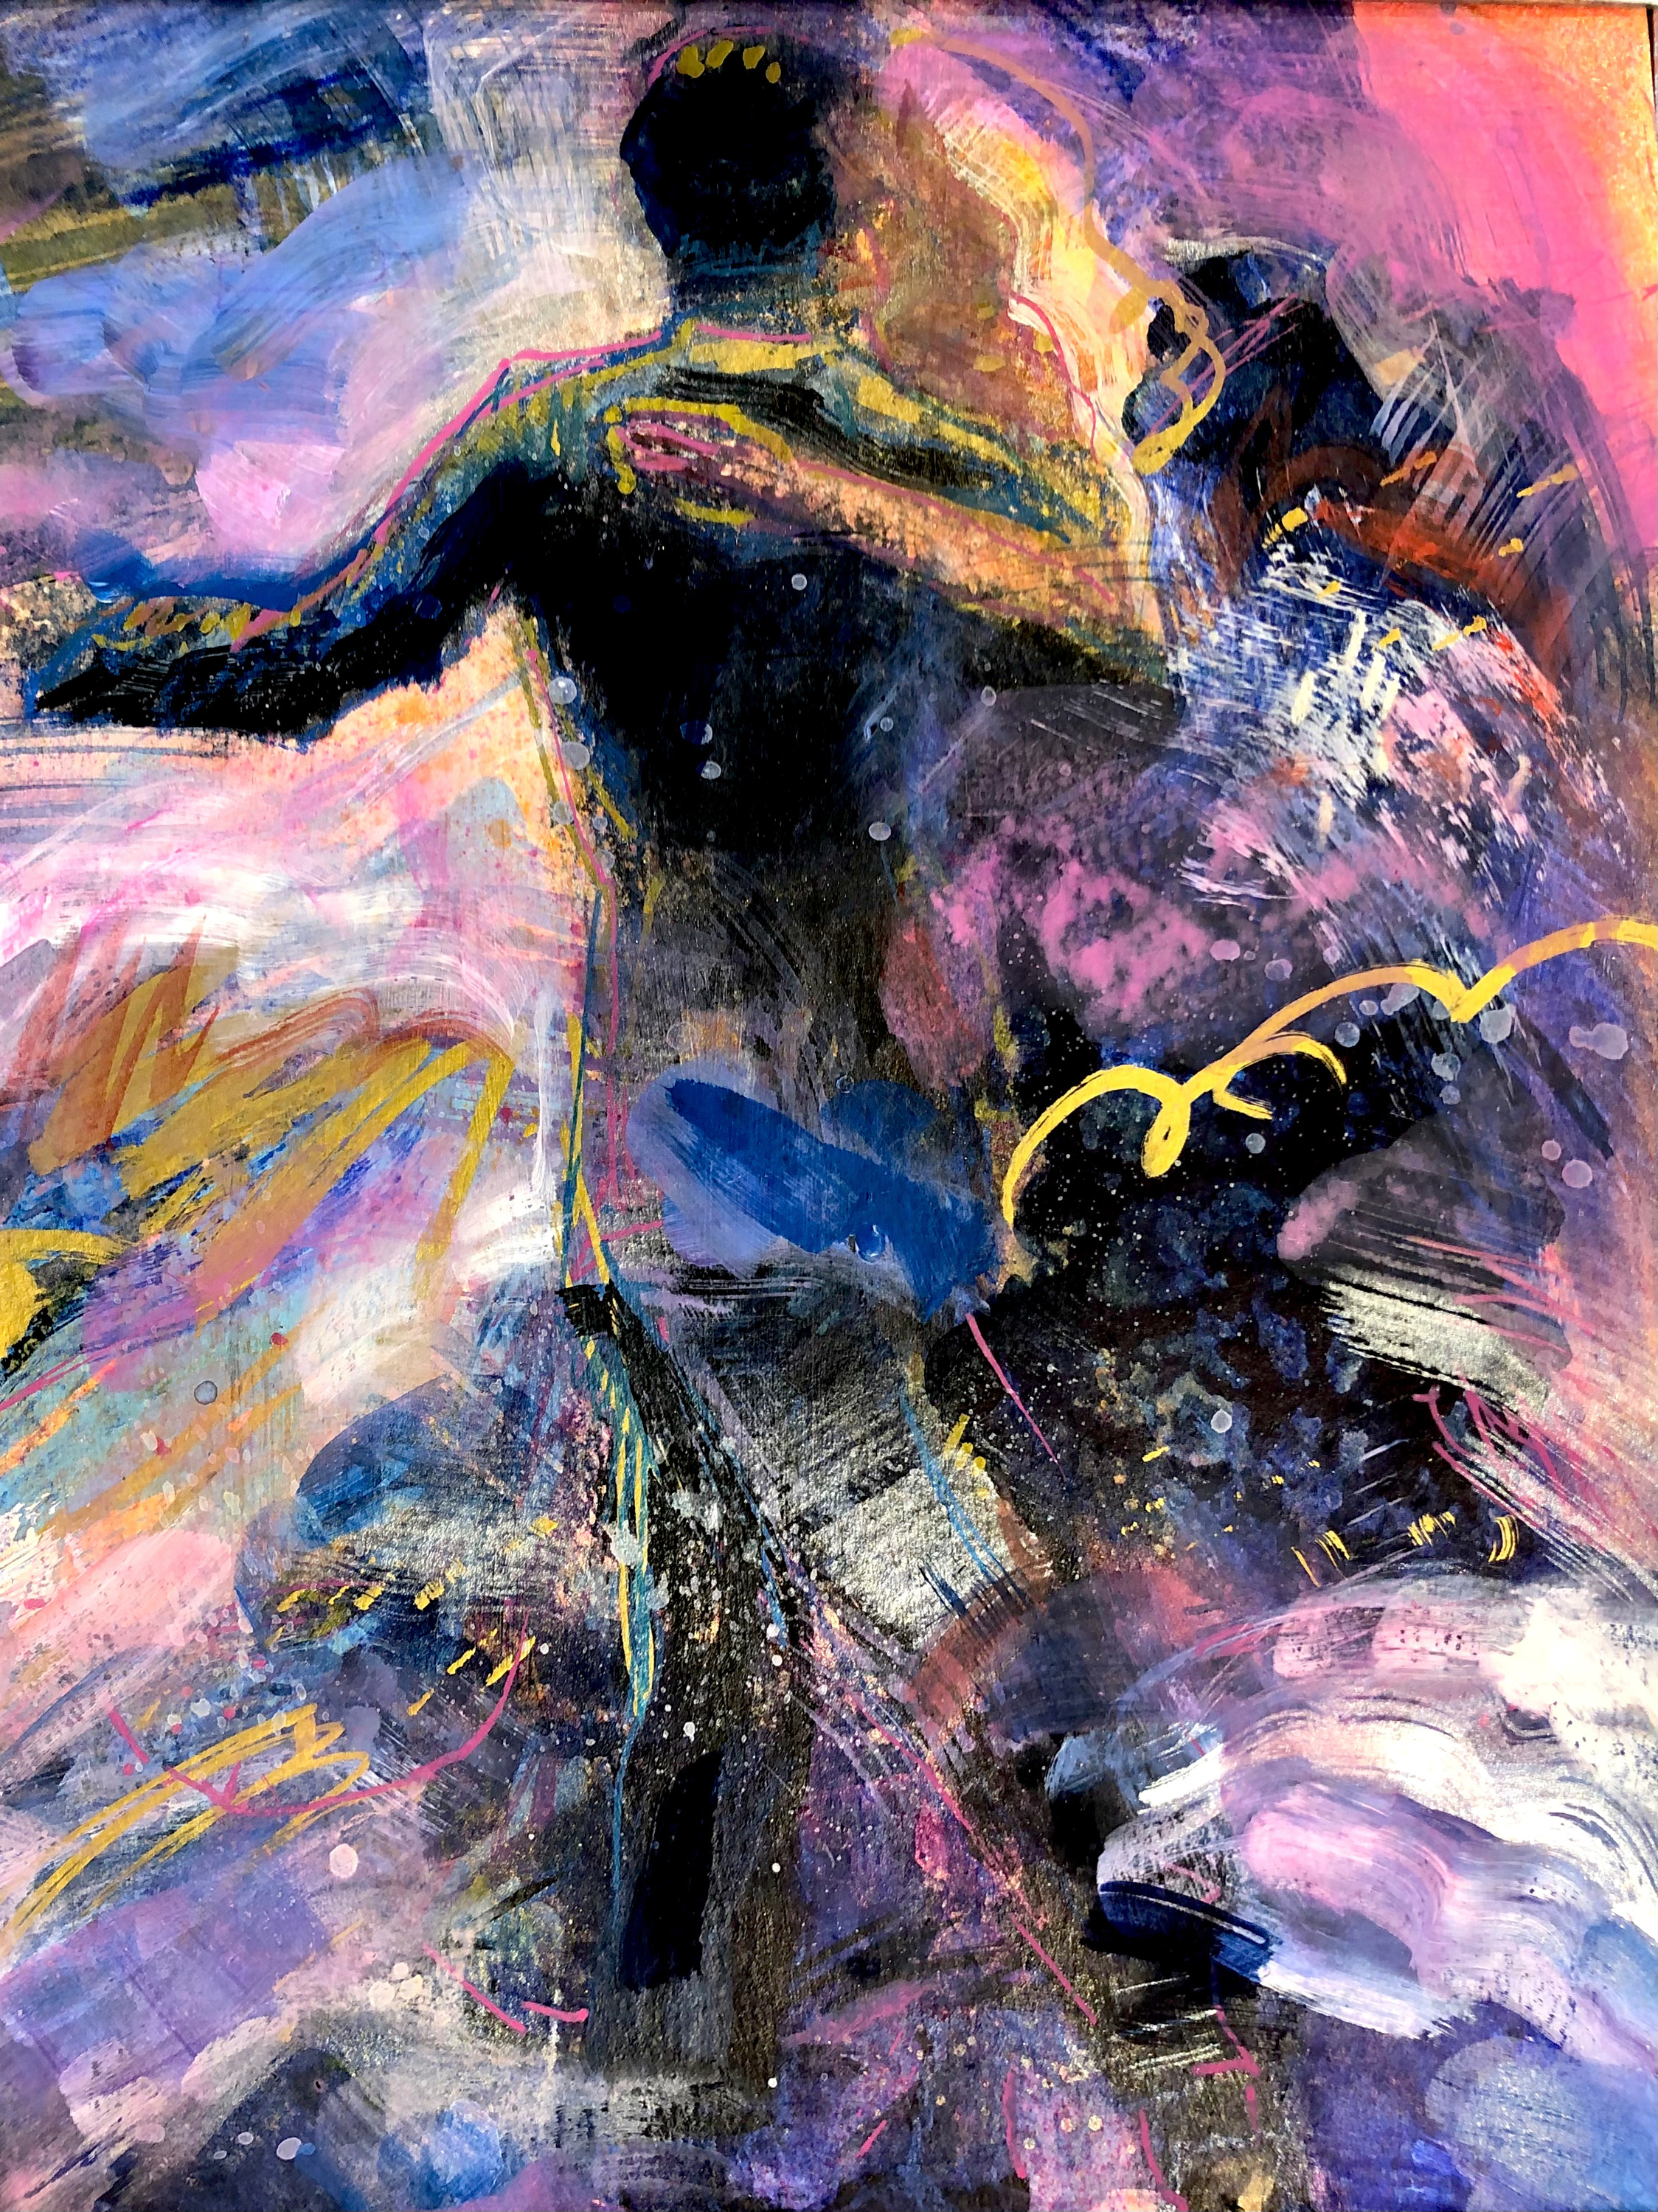 Heaven dancers 1 oil and mixed media on paper 12x9 my6noj